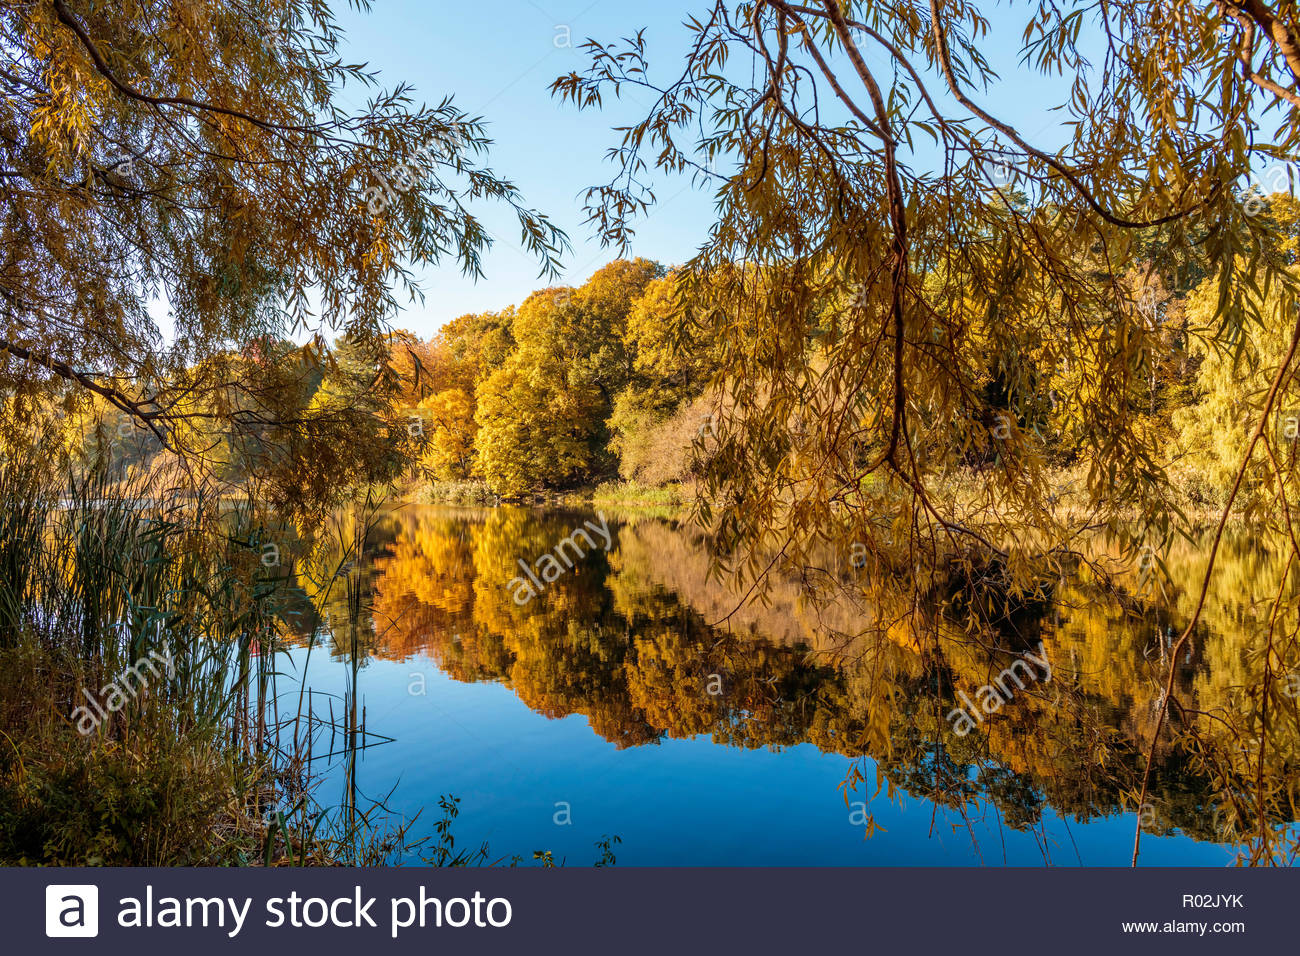 Autumn reflections of deciduous trees in still water of Grenadier Pond in fall in High Park in Toronto Ontario Canada - Stock Image